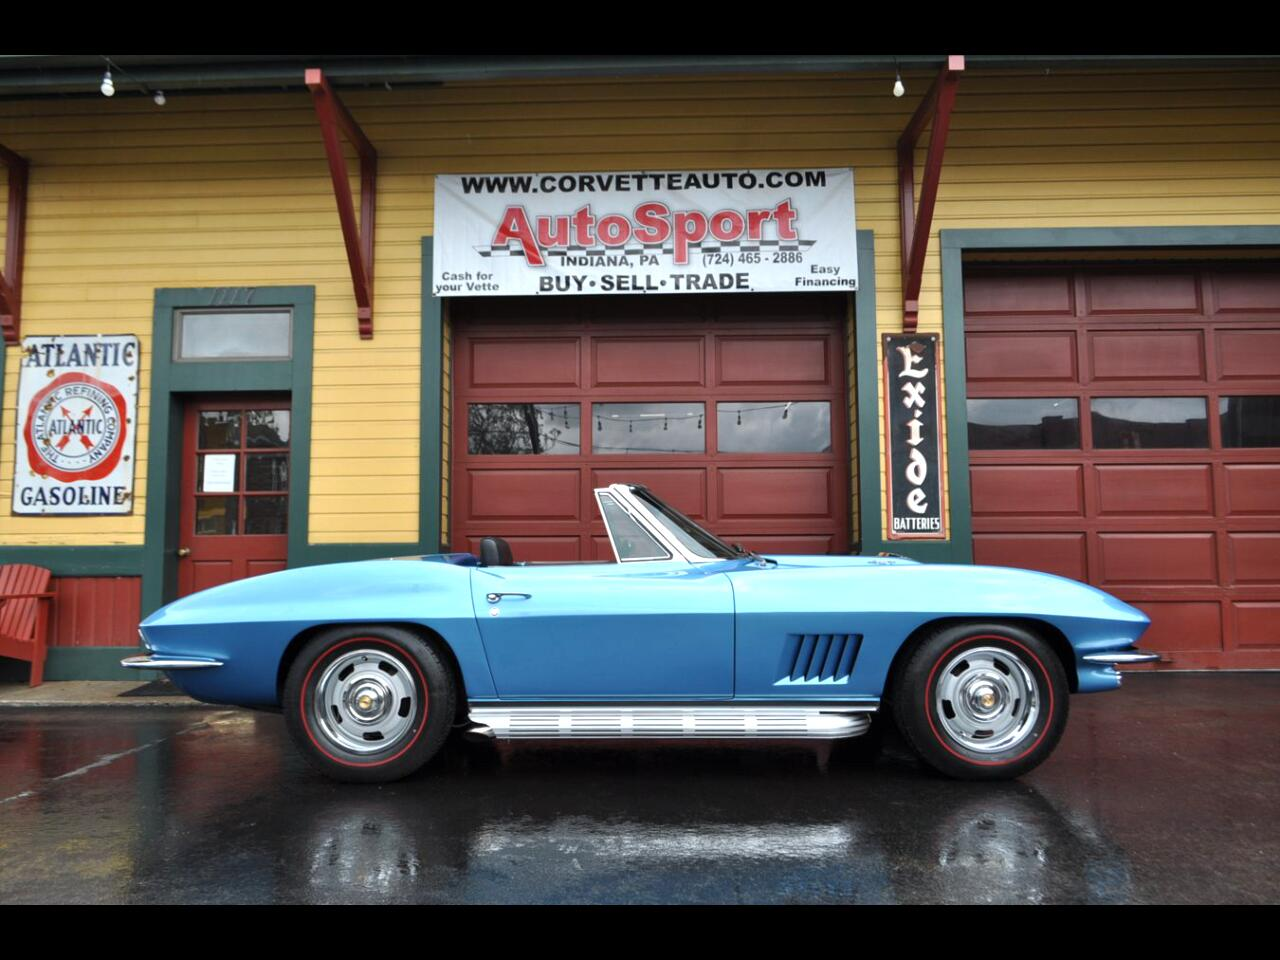 1967 Chevrolet Corvette 1967 Marina Blue Nut Bolt Frame Off Restored 435hp